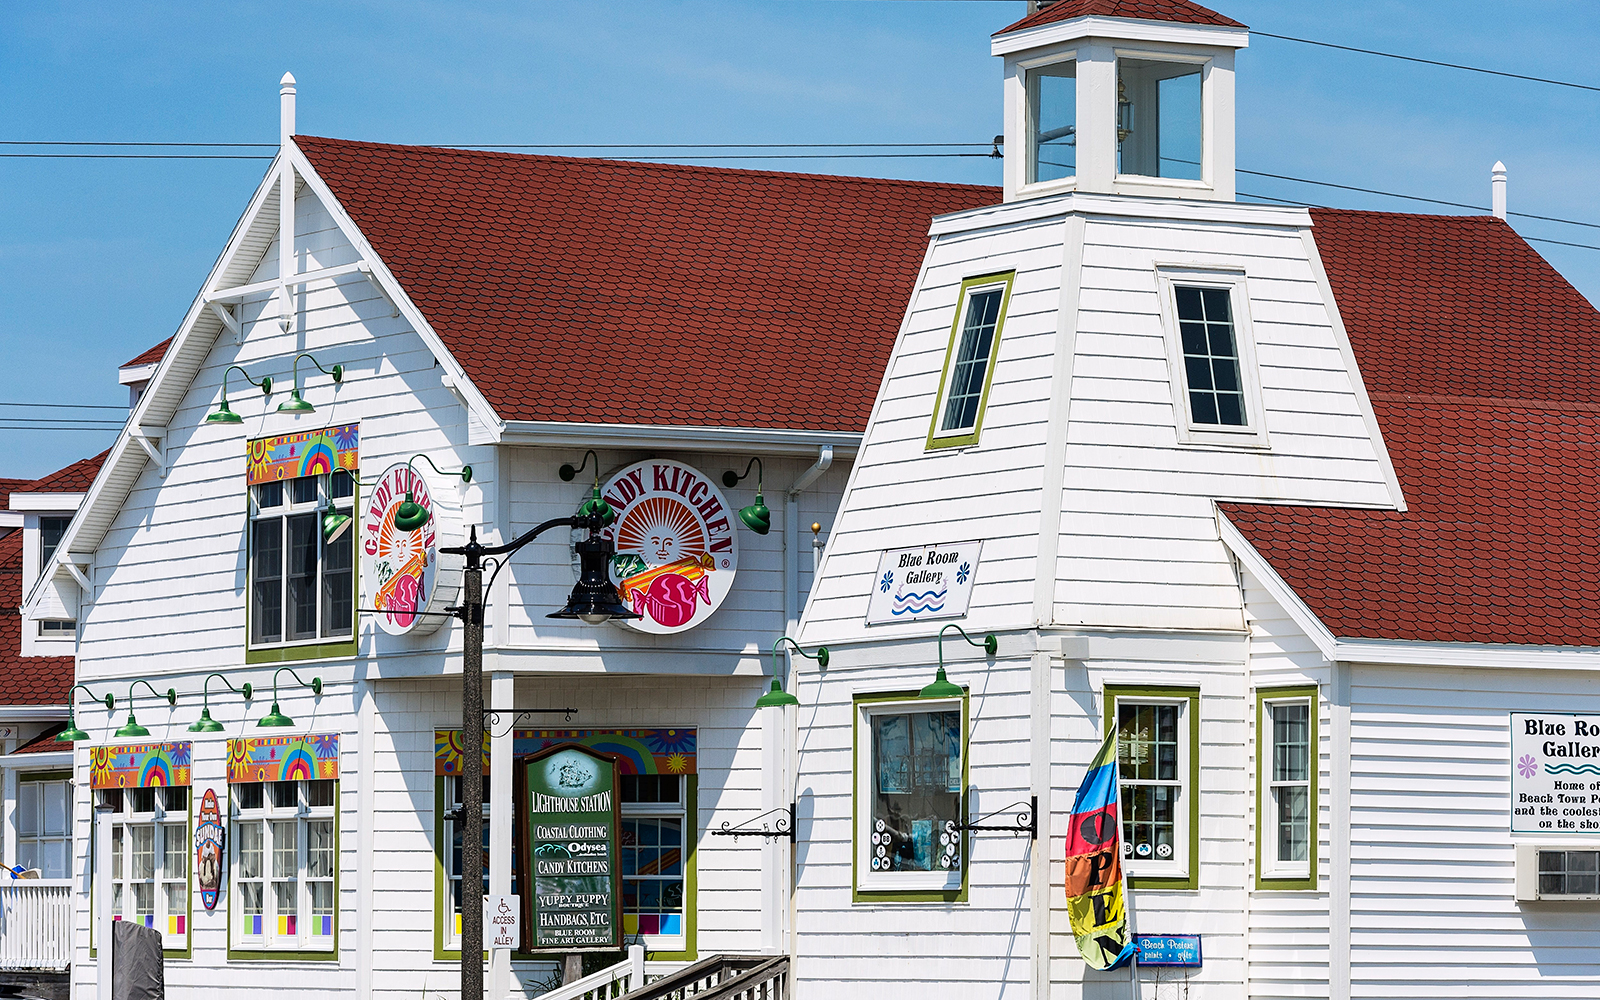 BETHANY BEACH, DELAWARE, UNITED STATES - 2012/05/08: Charming shops at Bethany Beach. (Photo by John Greim/LightRocket via Getty Images)